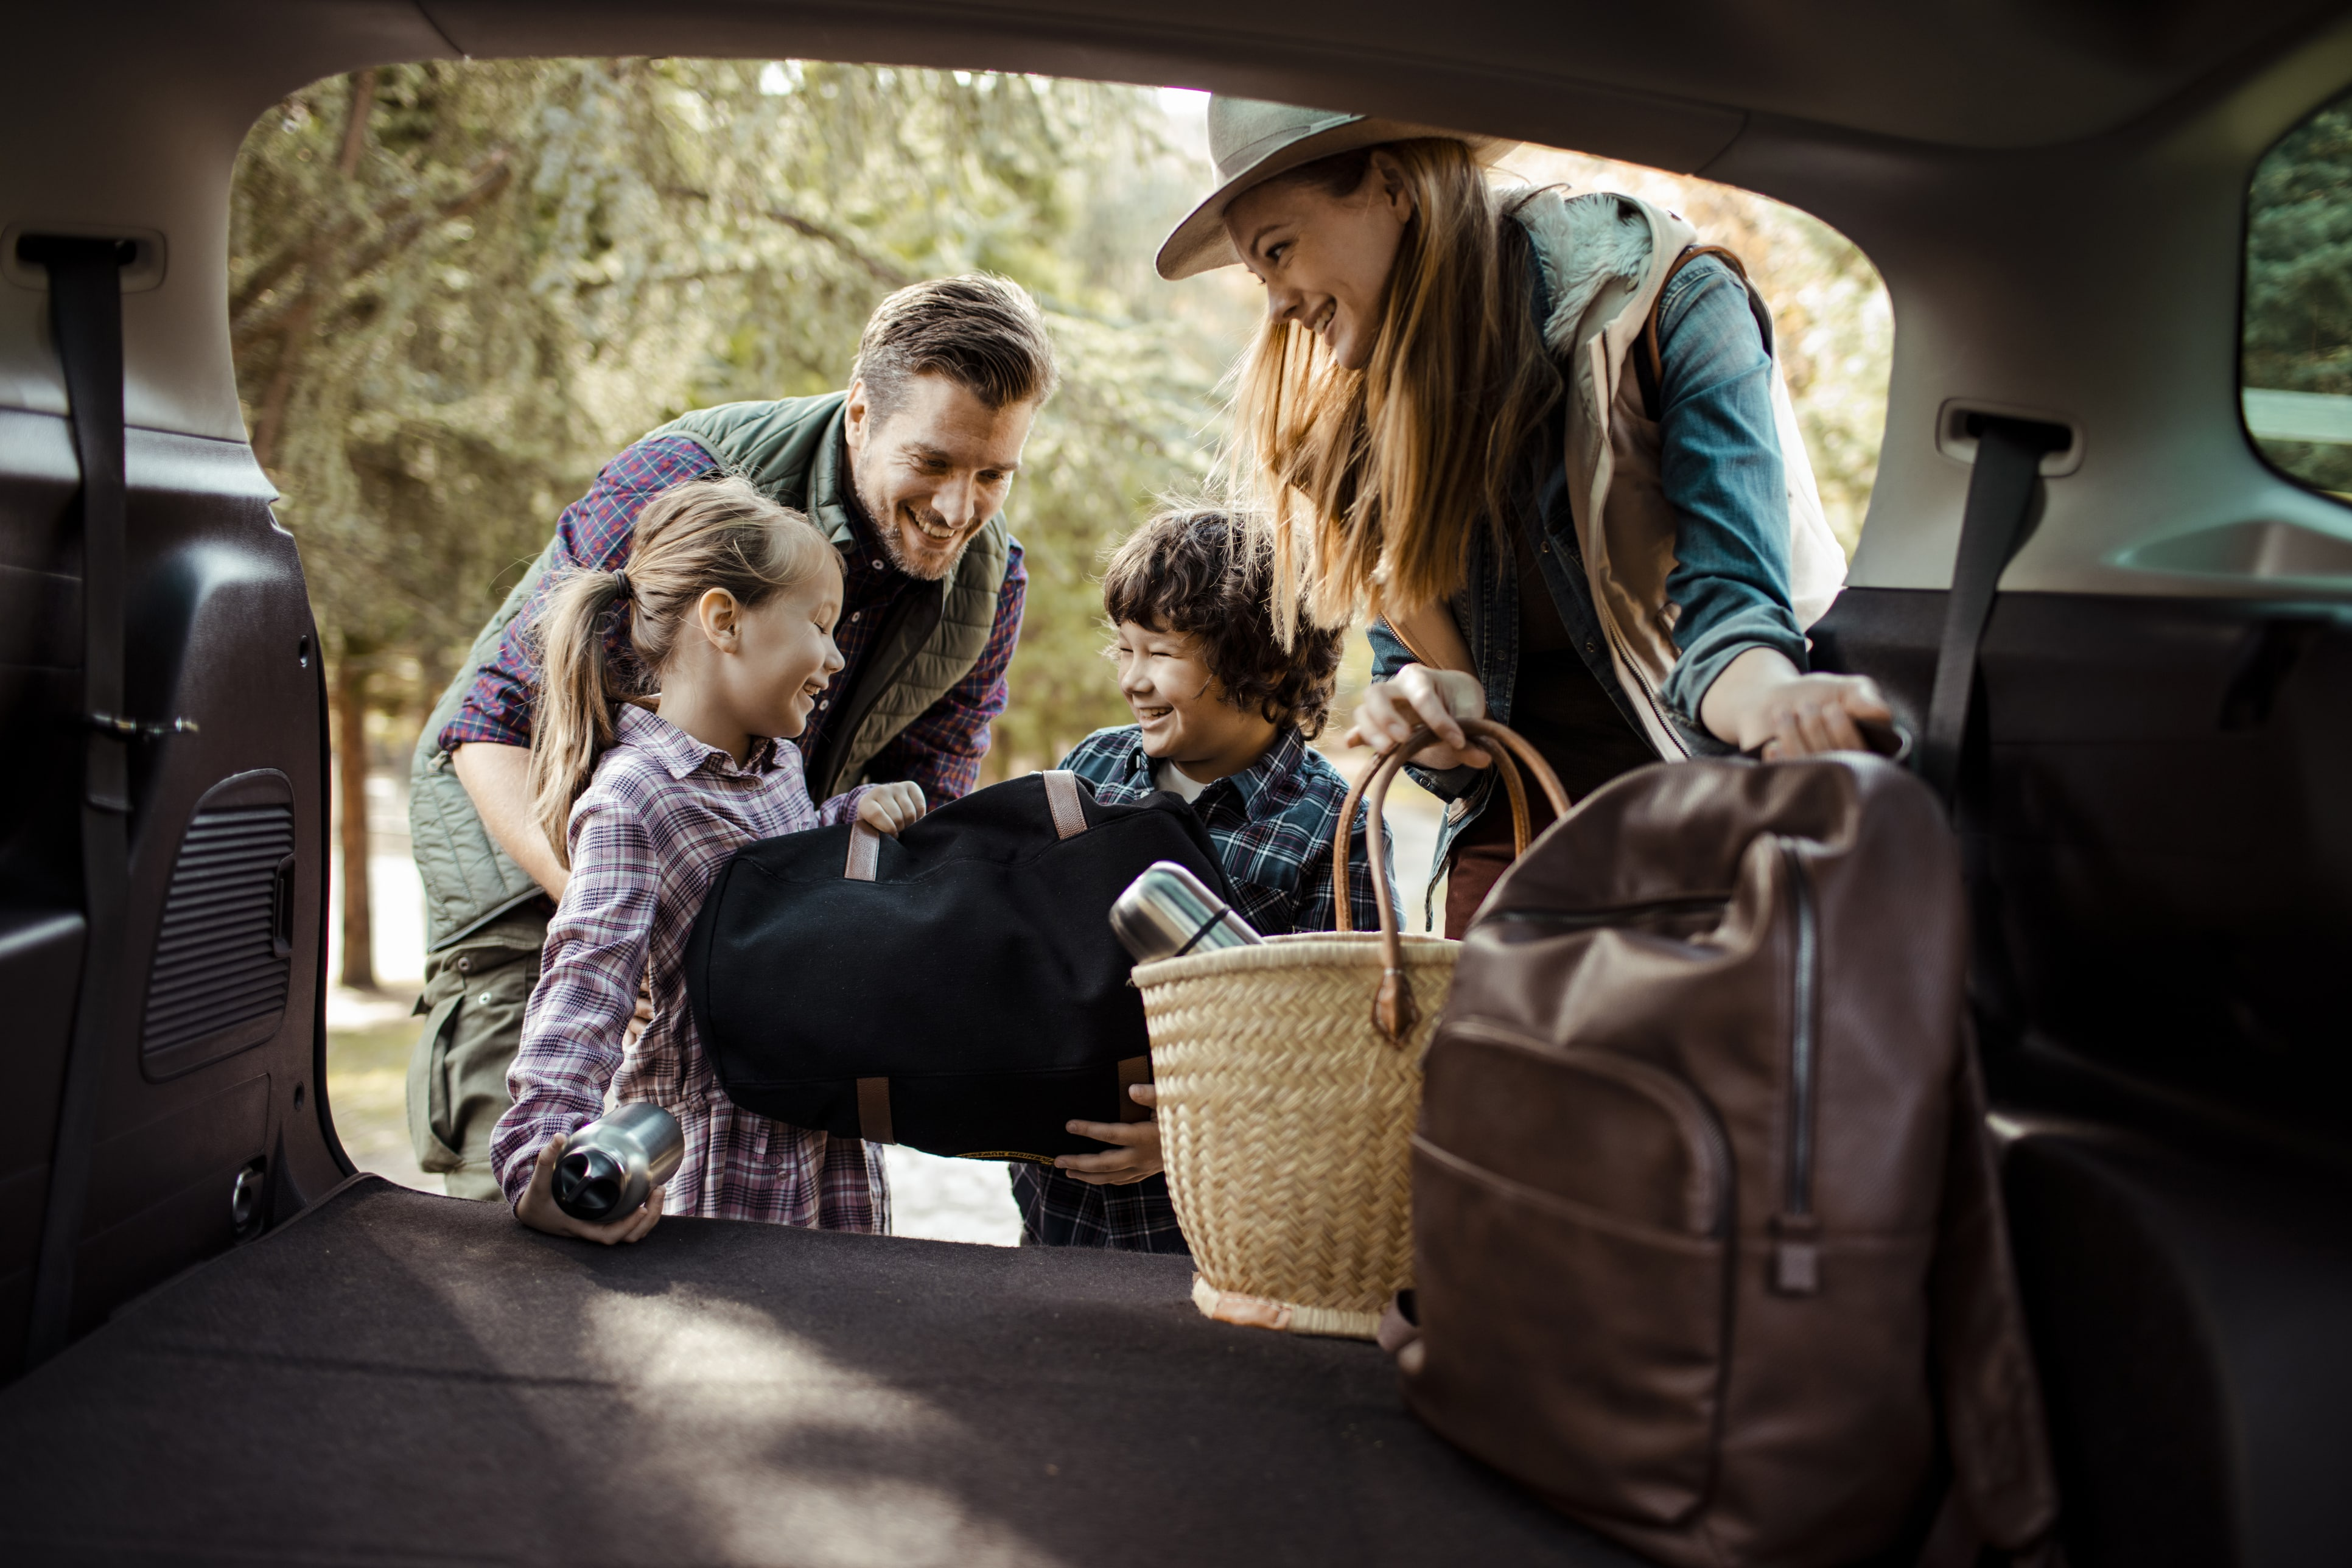 Young family putting bags in trunk of car